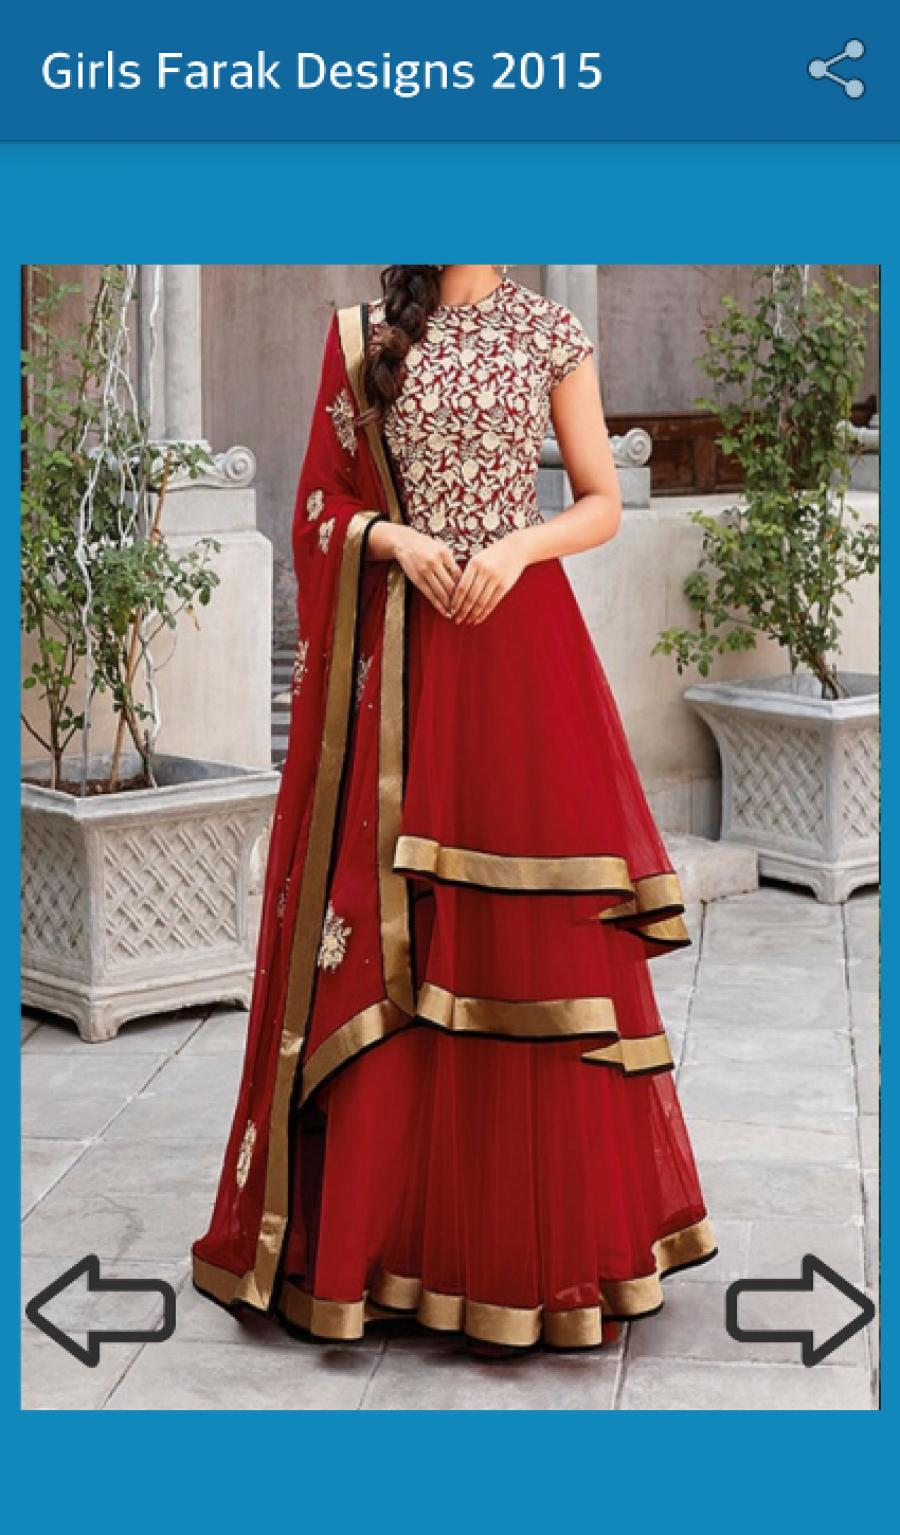 Fashion designing companies in india Top Web Design Companies In India: Best Companies List